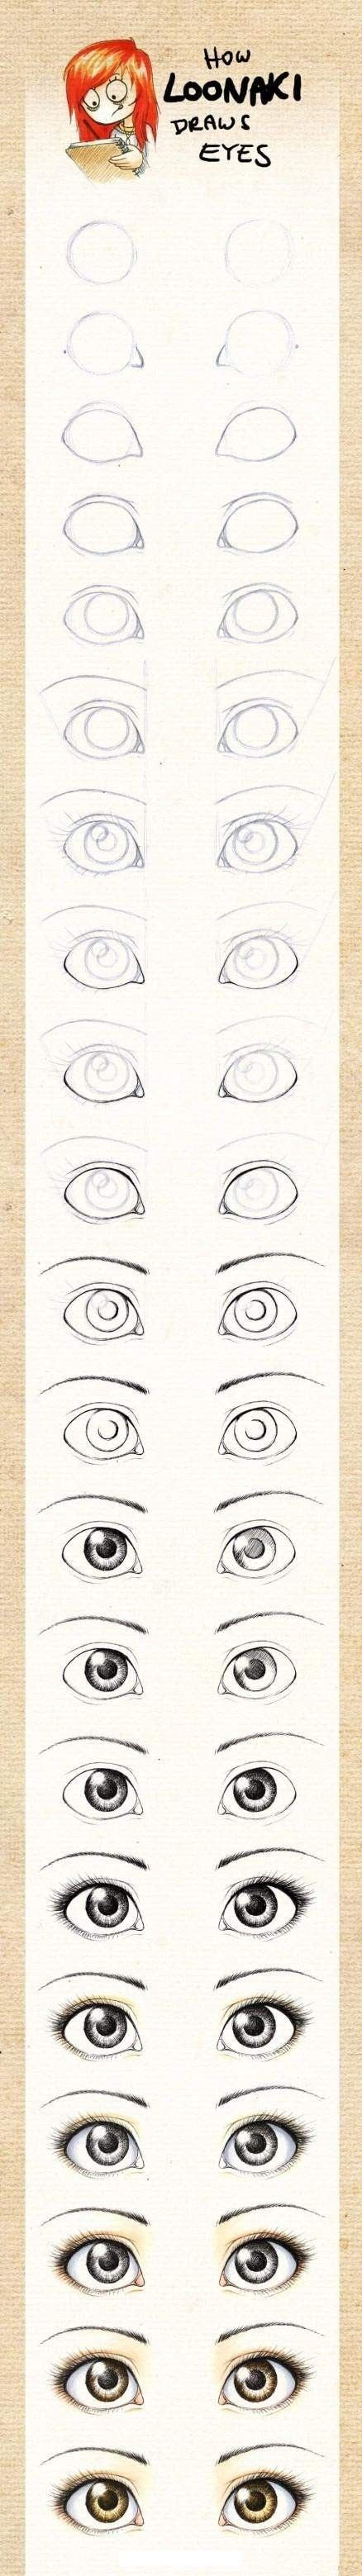 How to draw eyes www.SeedingAbundance.com http://www.marjanb.myShaklee.com